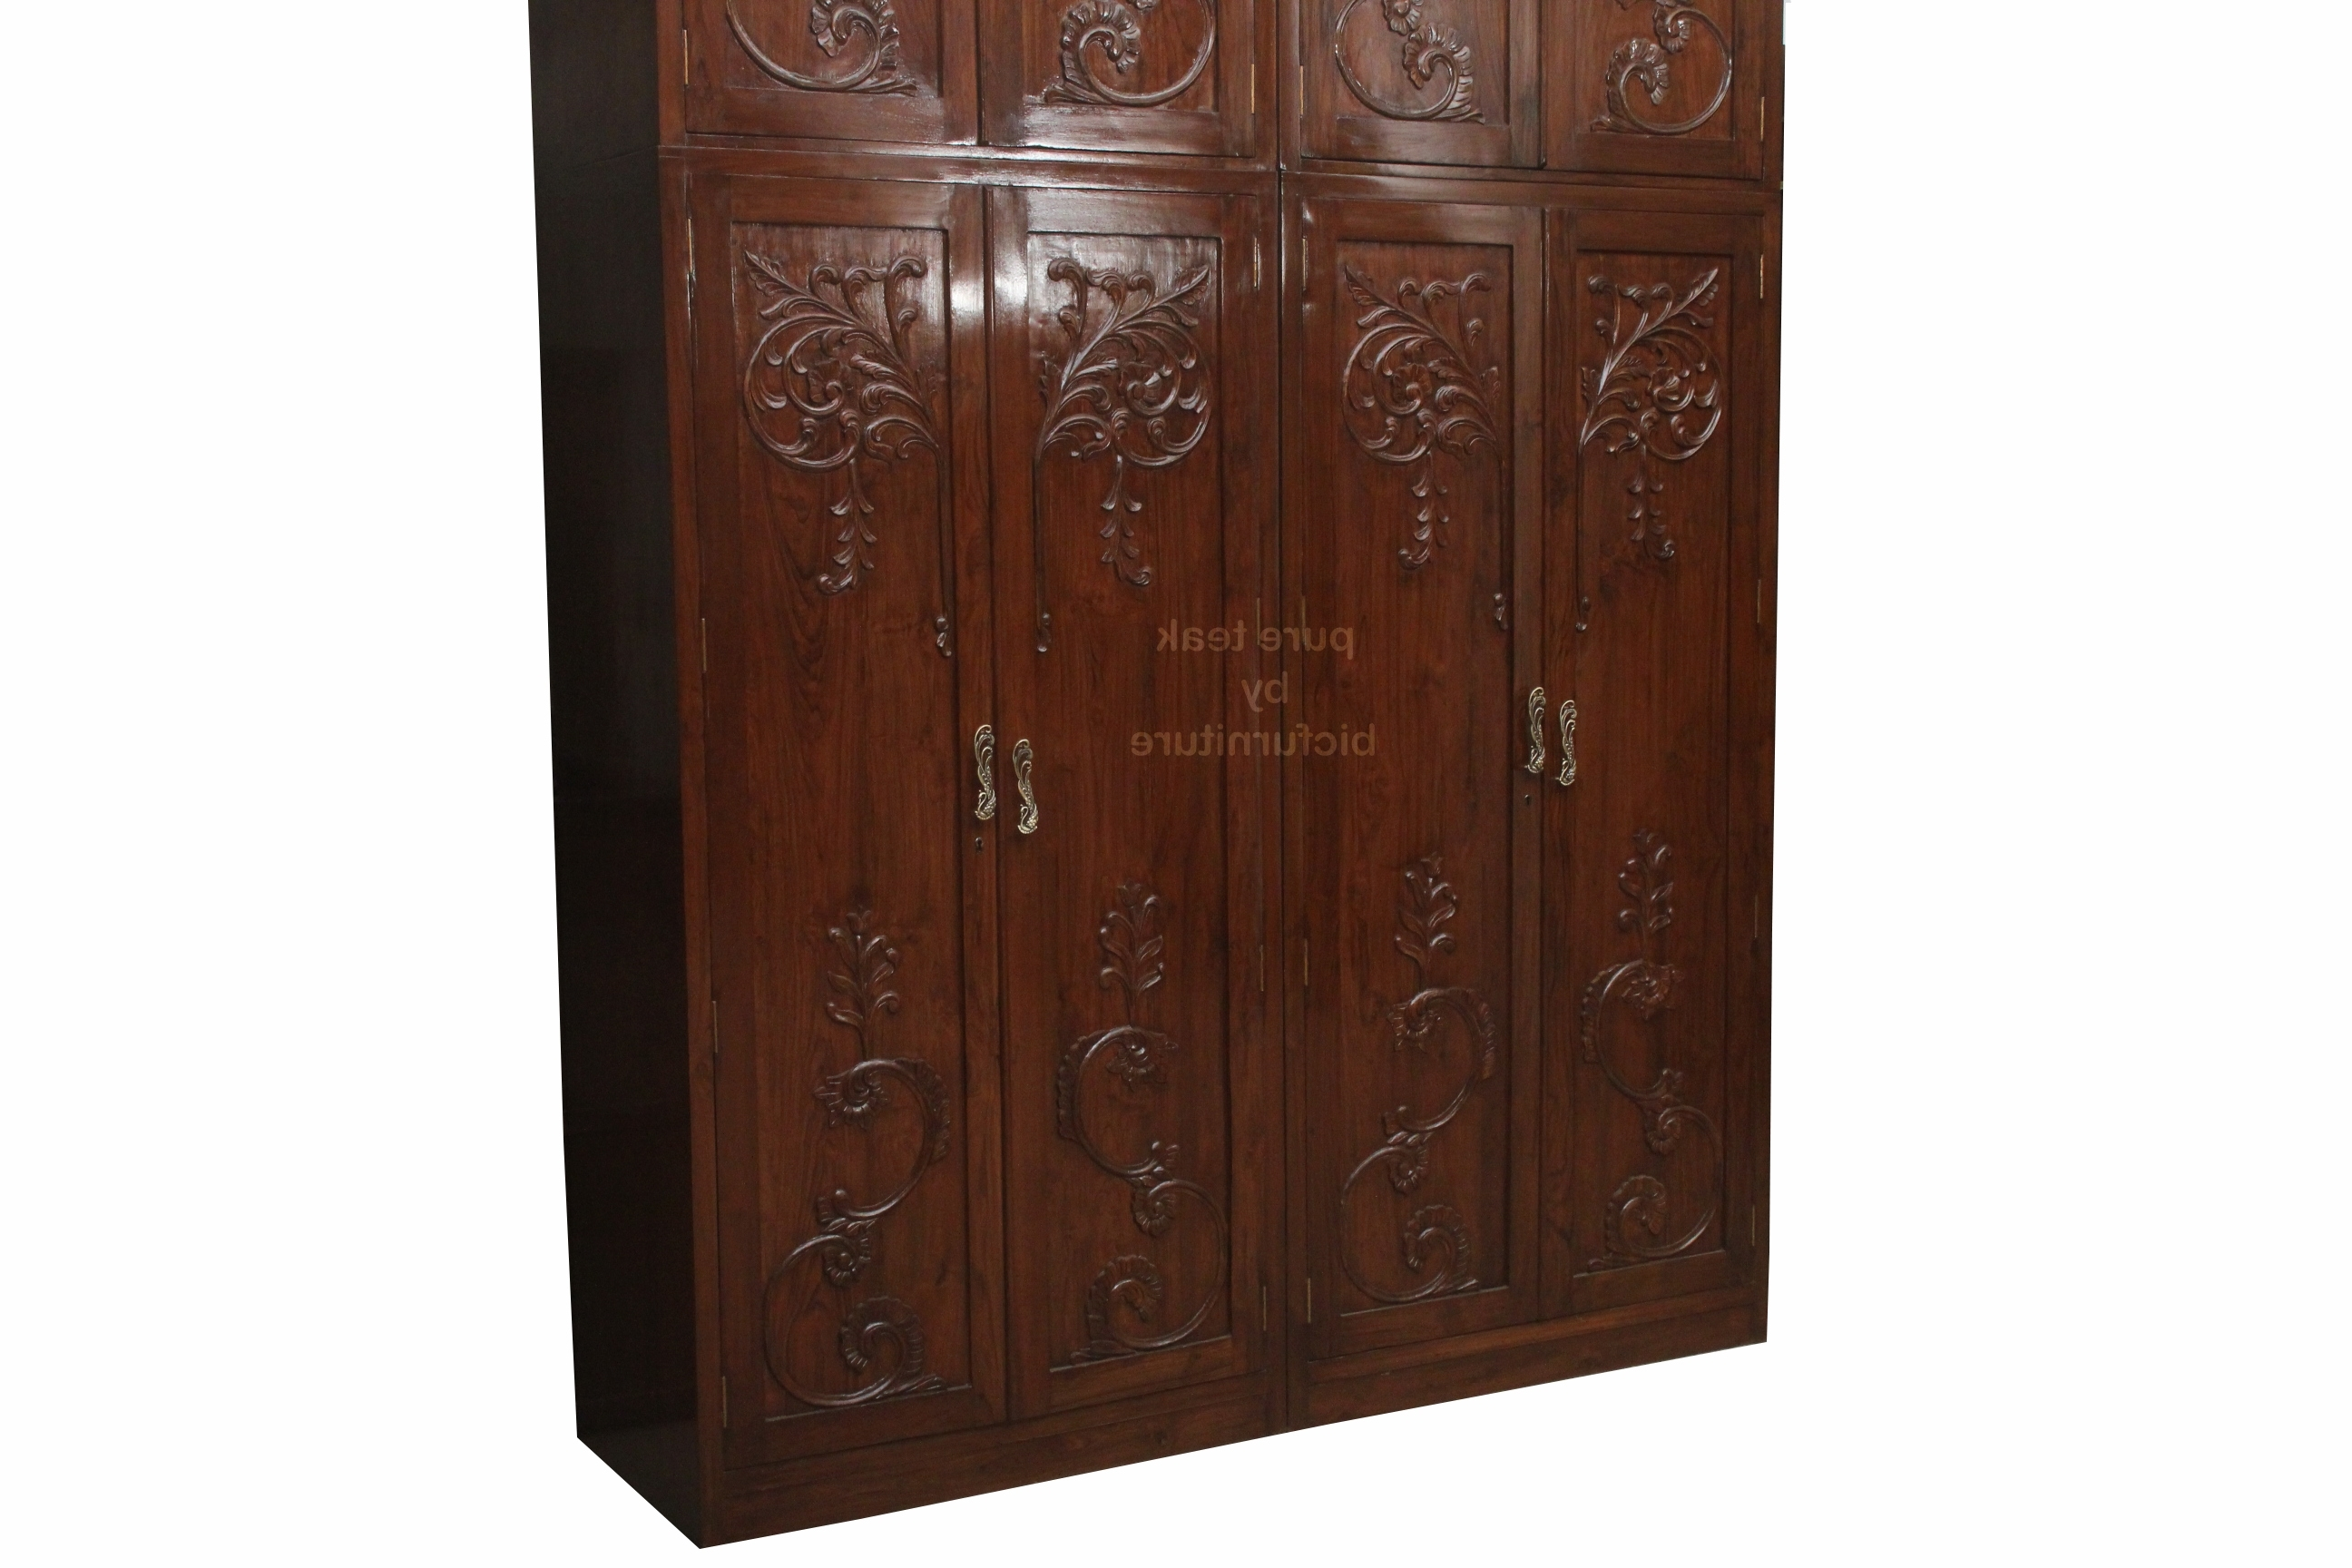 Wooden Wardrobes Throughout Newest Quality Wooden Wardrobes In Mumbai (View 3 of 15)